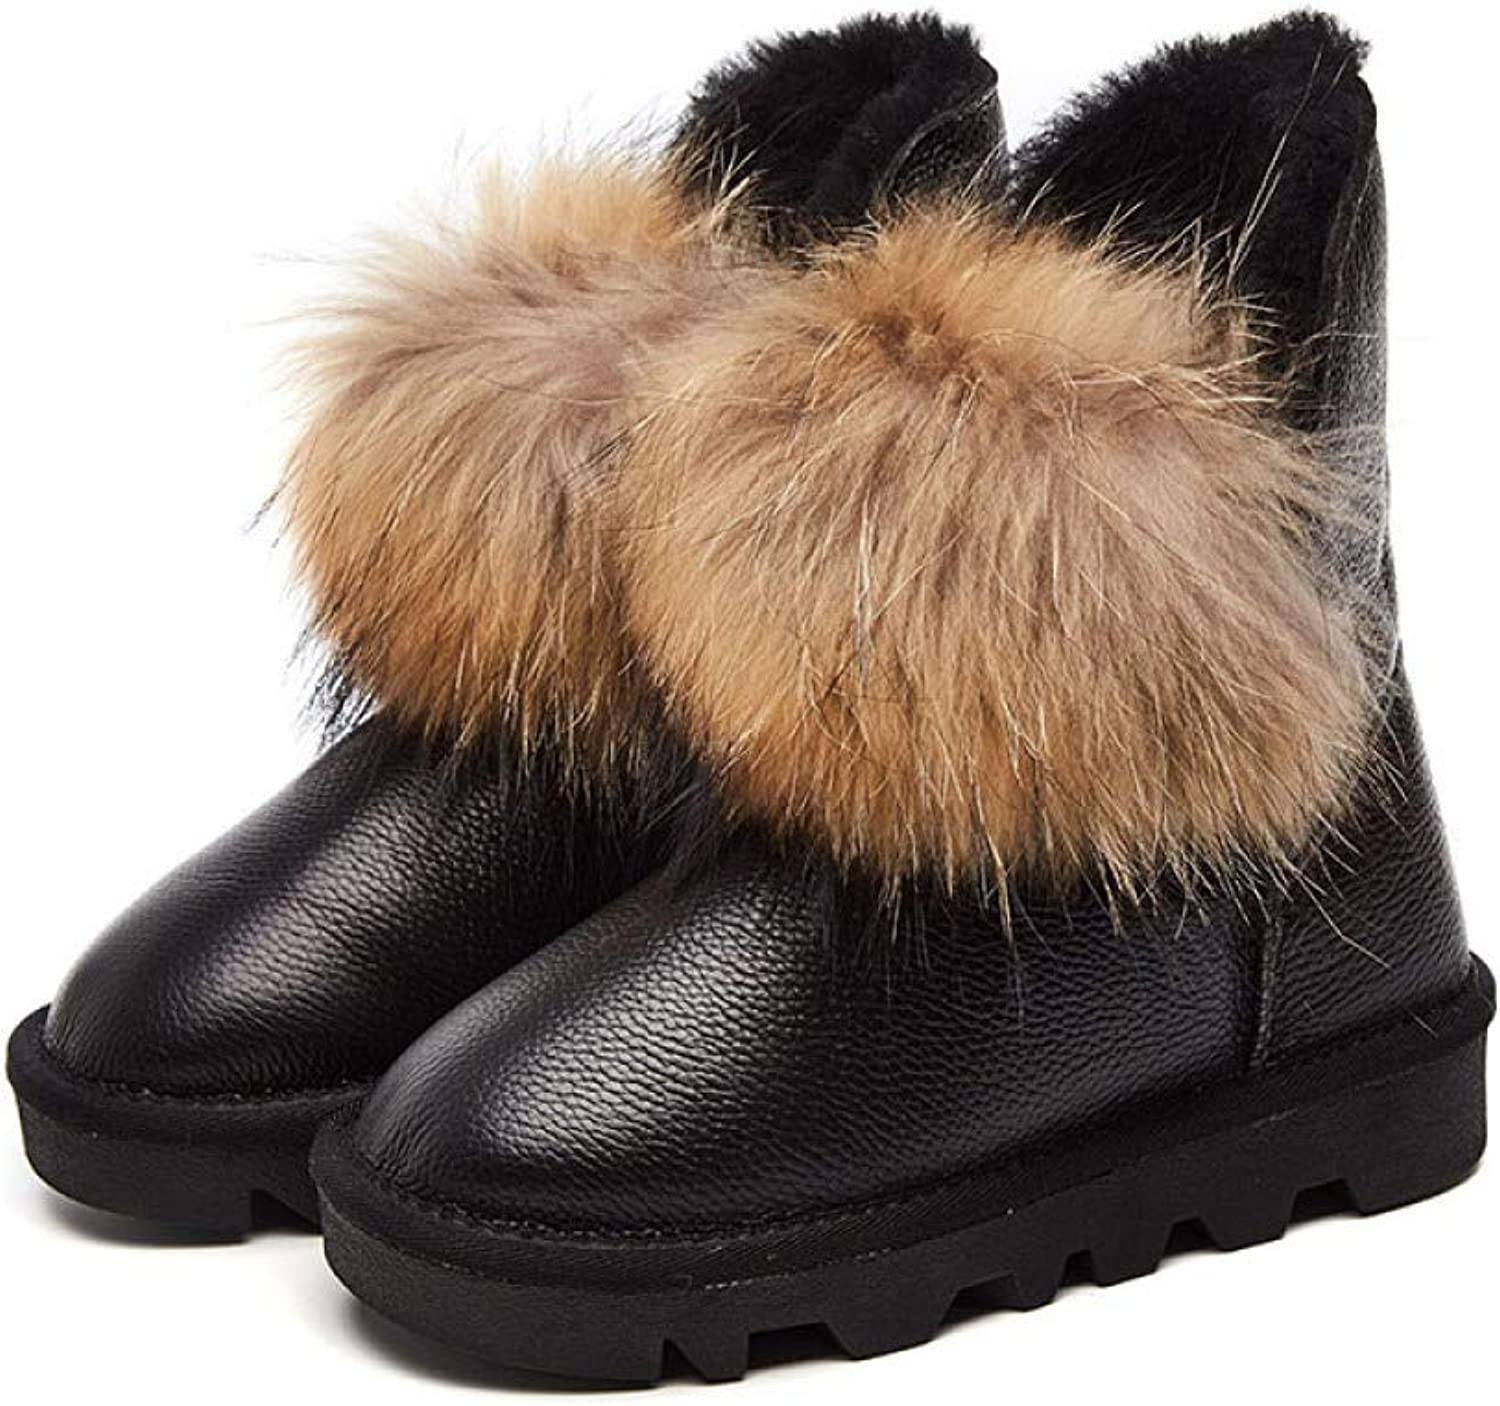 Snow Boots Women, Thick Warm Boots, Stylish Women's shoes for Home, Outdoors Etc